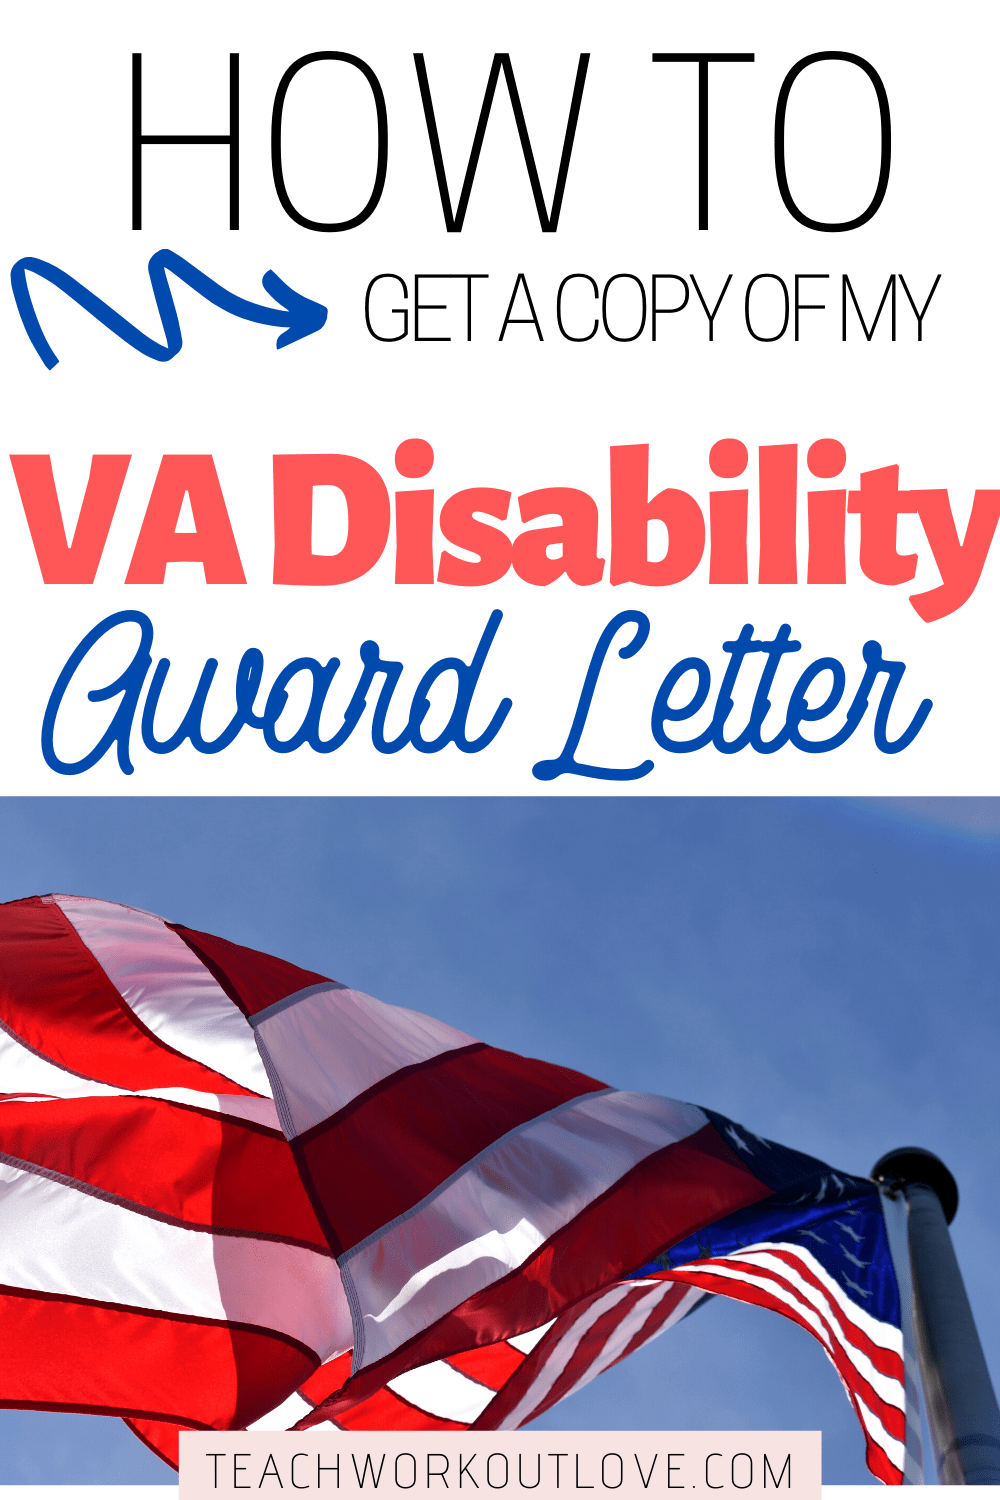 A award letter is documentation every disabled veteran should have. Many vets don't have a copy. Read on for process of retrieving your award letter.